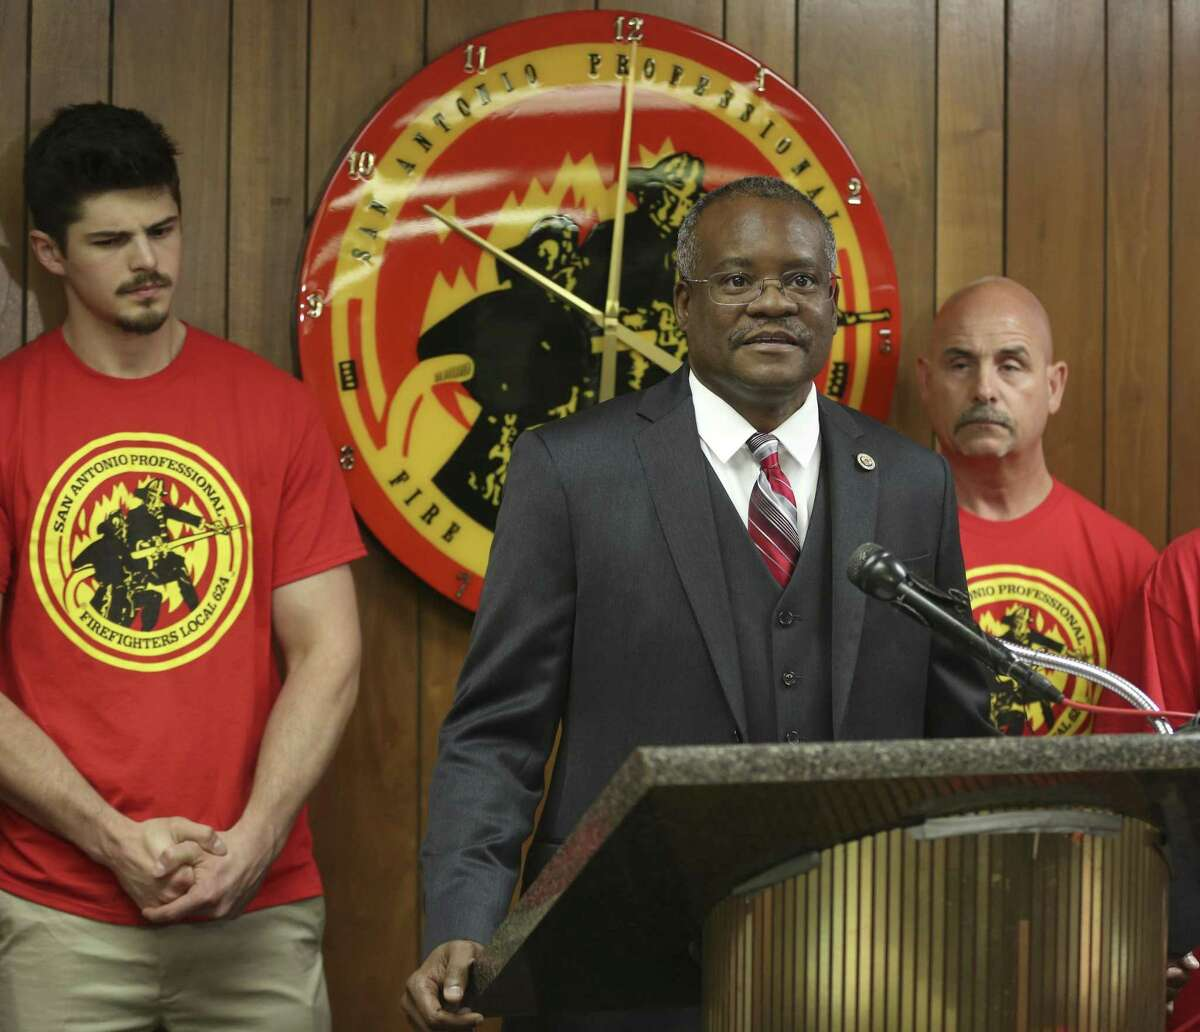 Chris Steele, San Antonio Professional Fire Fighters union president, talks with reporters in February 2018 at the union hall. Thursday, the union sent a letter to city officials, saying it's ready to start negotiating a new contract more than four years after the current one expired.